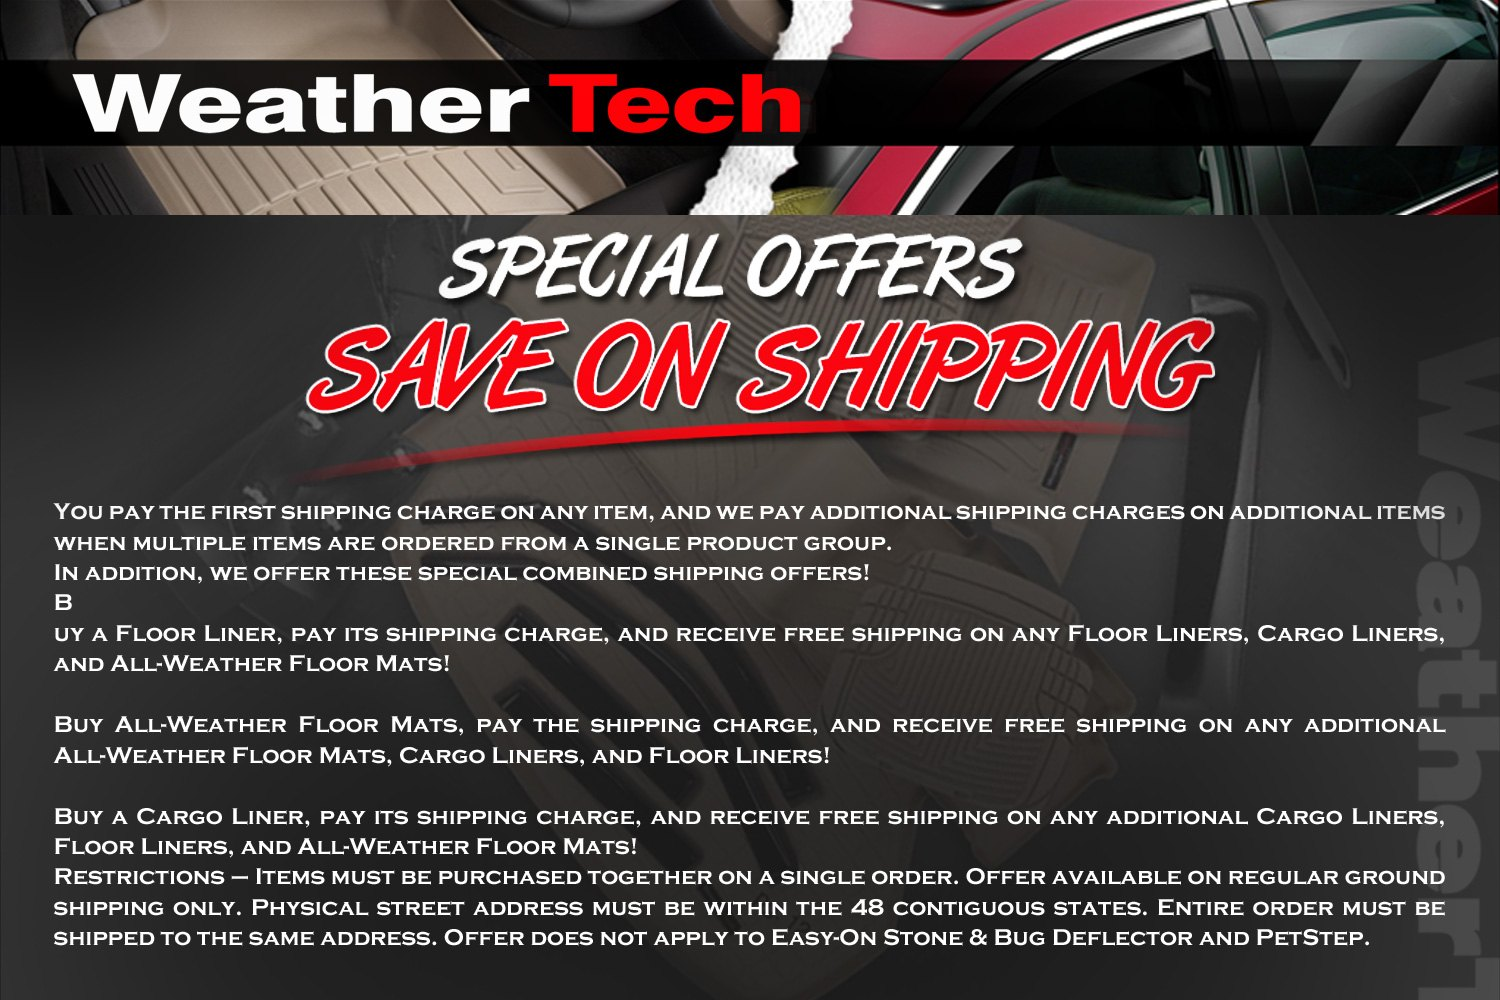 weathertech discount codes and coupons